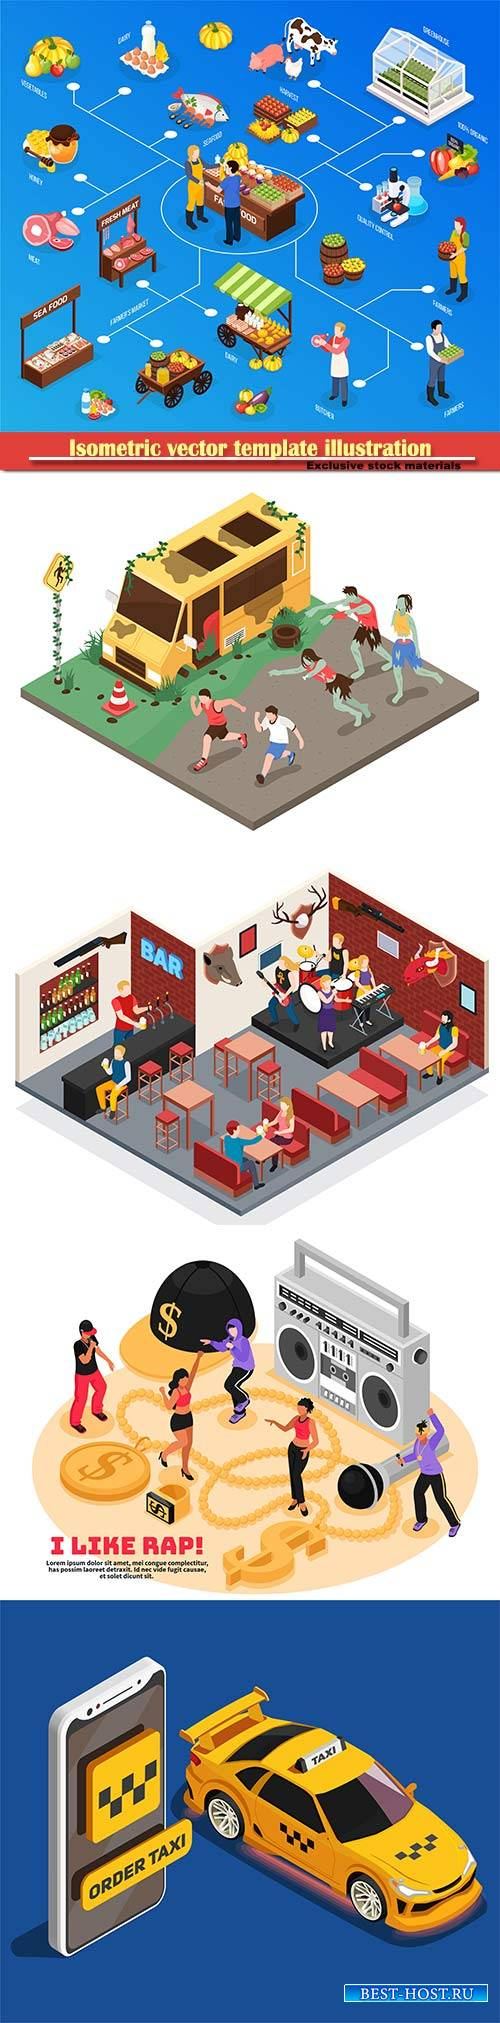 Isometric vector template illustration # 31